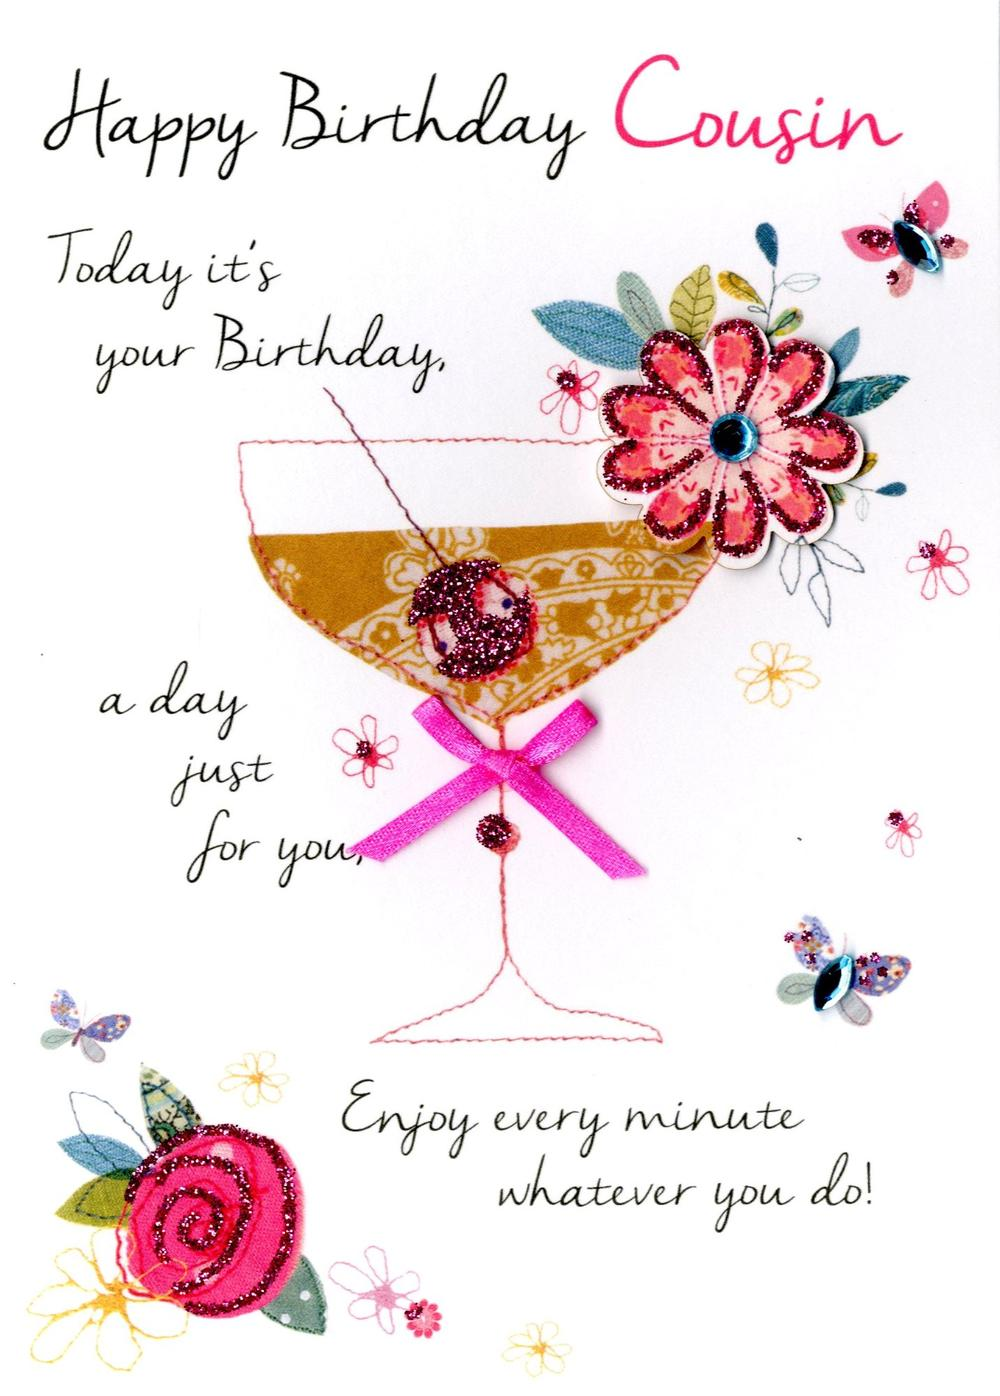 Female Cousin Happy Birthday Greeting Card Cards Love Happy Birthday Wishes Cousin